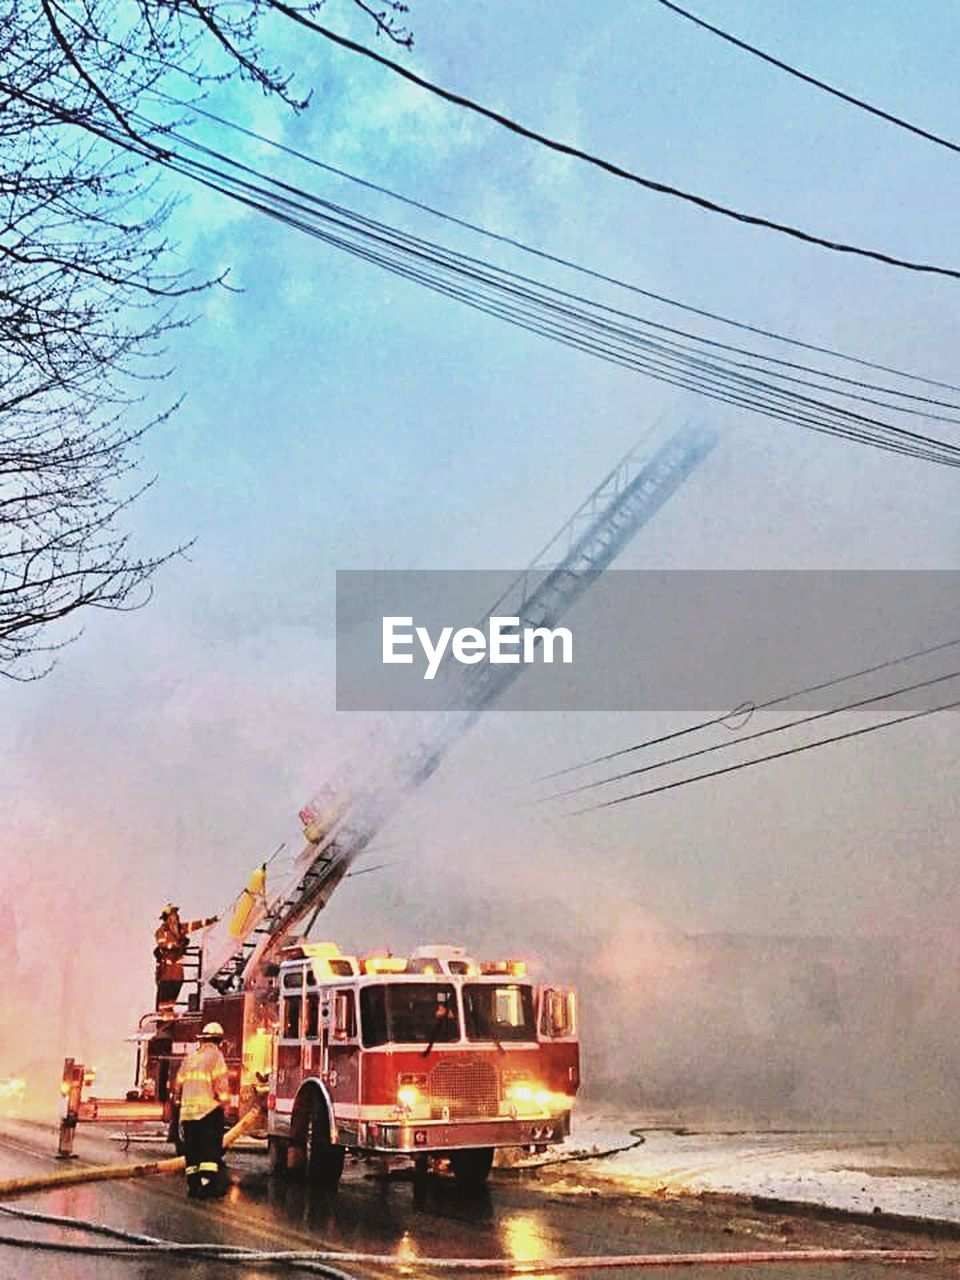 smoke - physical structure, transportation, firefighter, commercial land vehicle, spraying, sky, outdoors, water, day, destruction, land vehicle, electricity pylon, fire engine, men, people